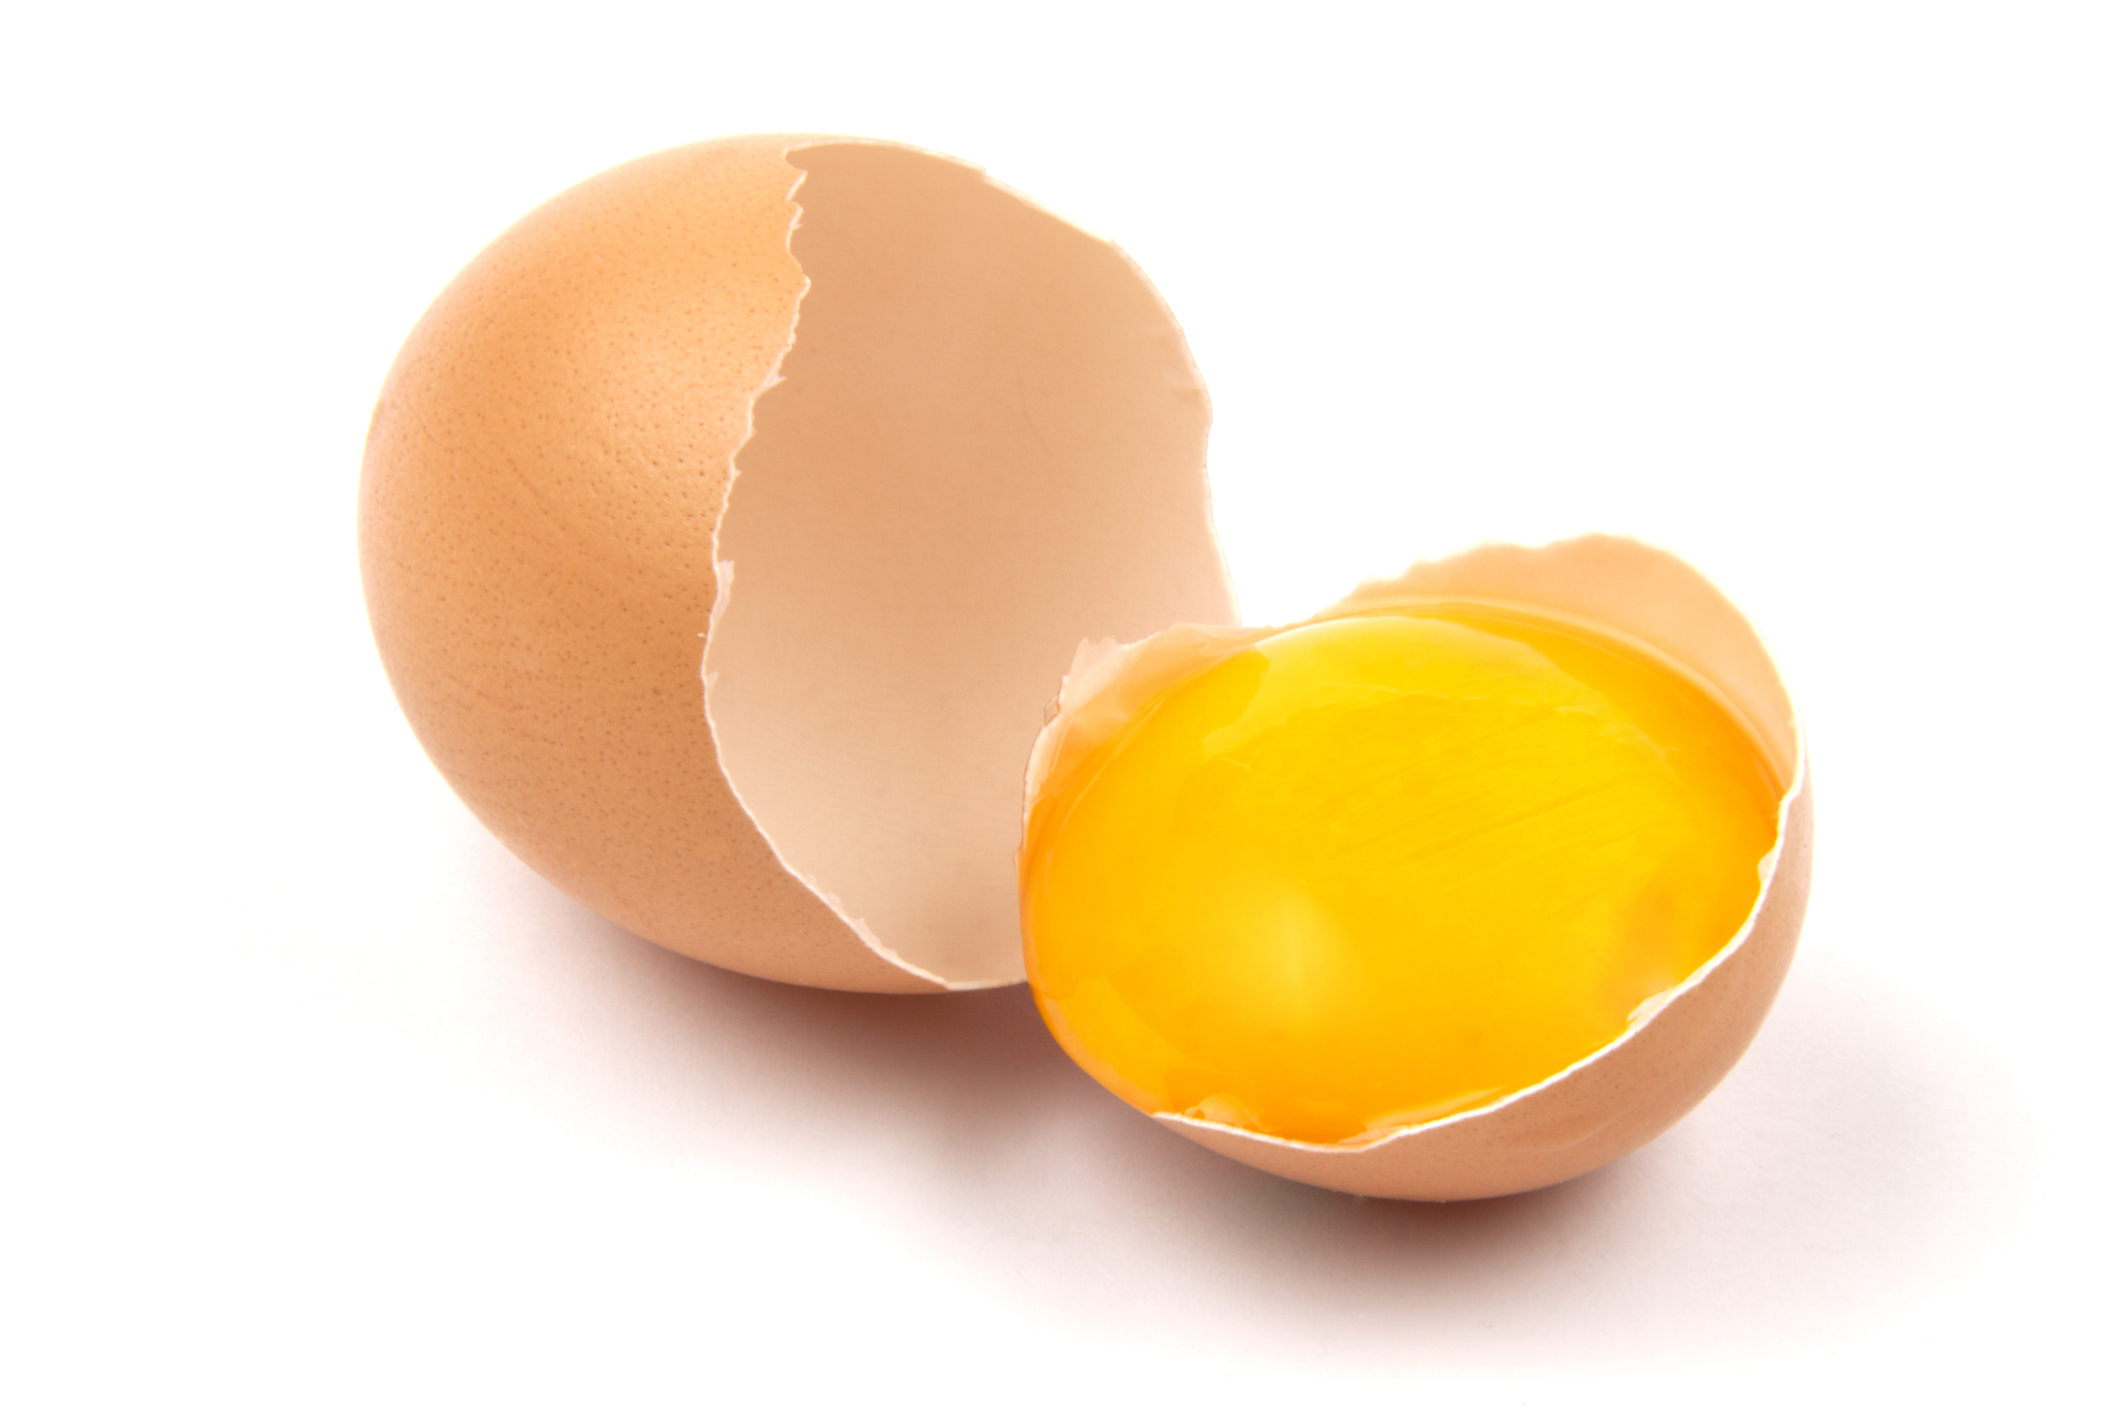 Gold egg PNG image - Egg HD P